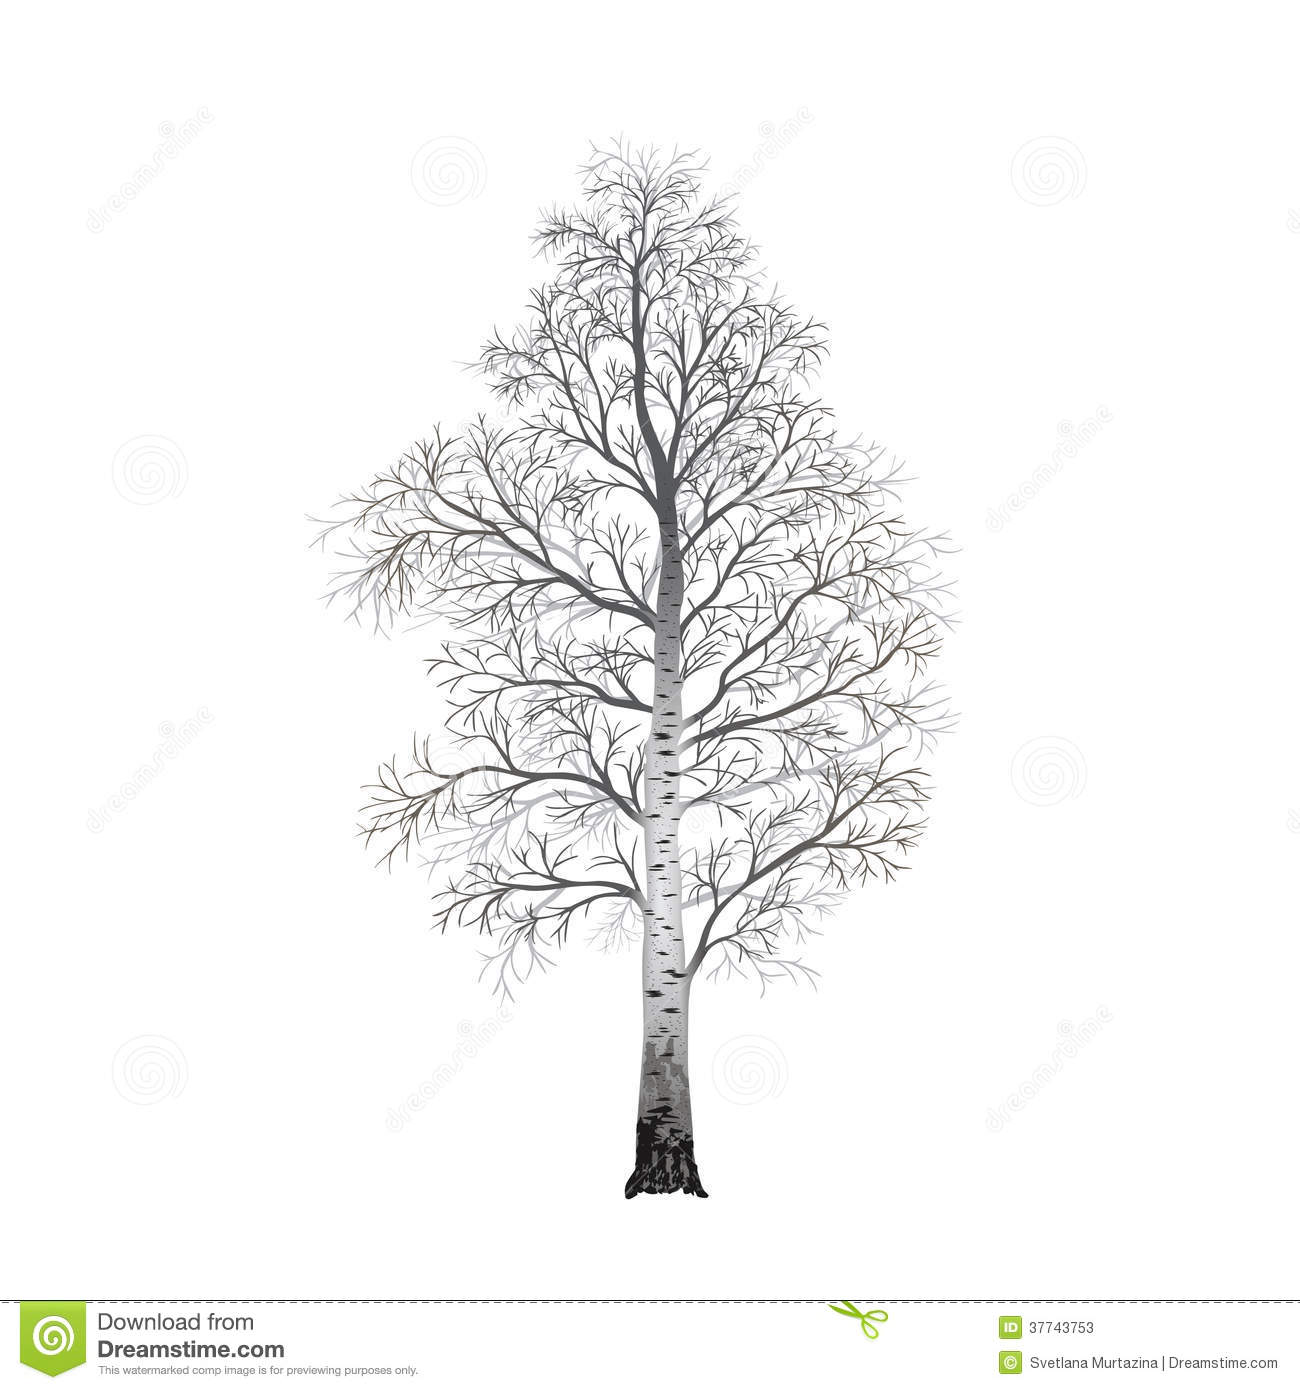 Detached Tree Birch Without Leaves Illustrations Stock